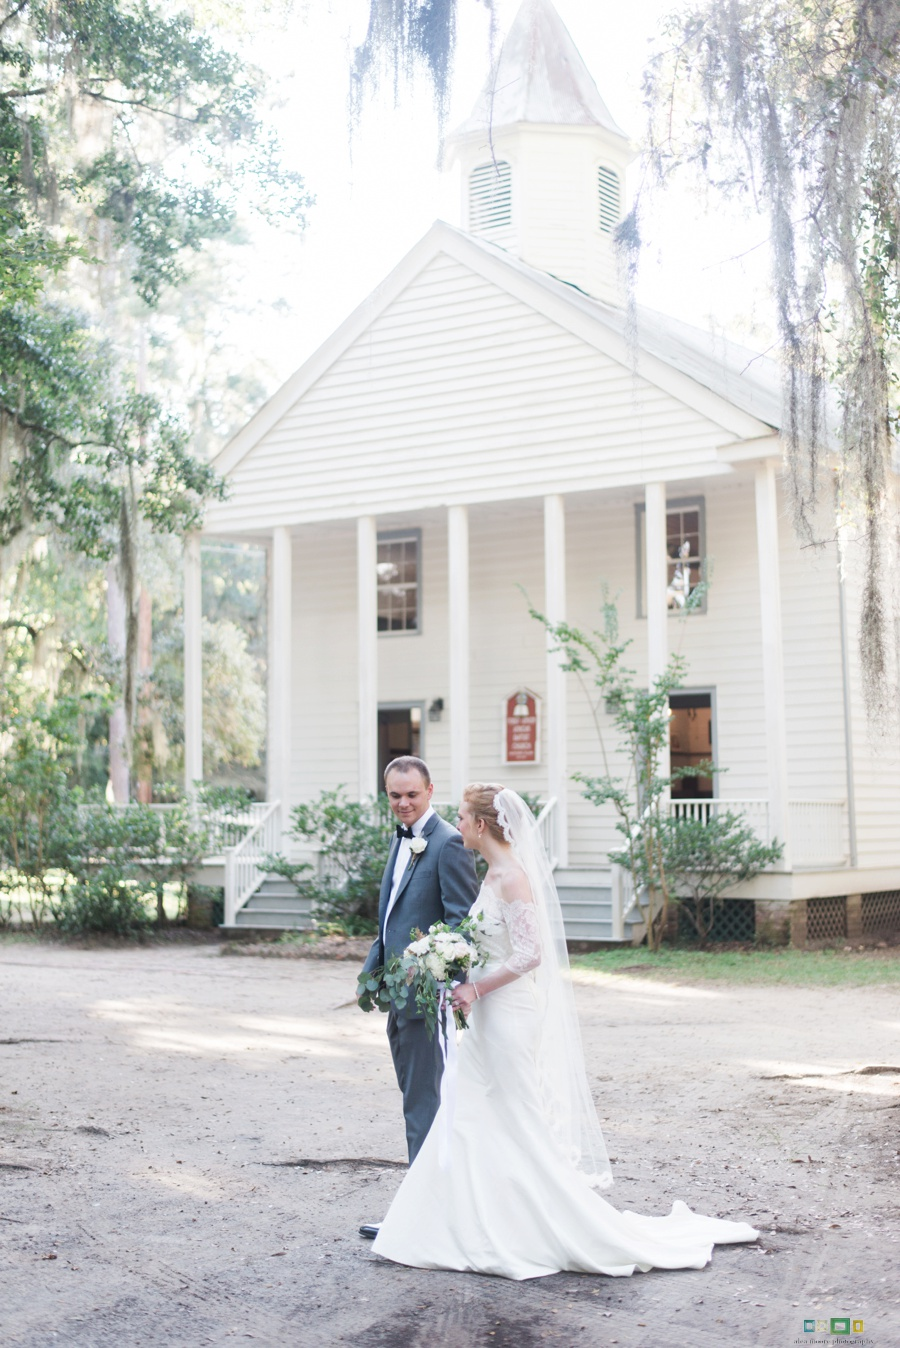 alea-moore-photography-Daufuskie-Island-wedding-ivory-and-beau-bridal-boutique-dakota-nicole-miller-rebecca-schoneveld-marisol-classic-southern-wedding-savannah-wedding-dresses-savannah-bridal-boutique-savannah-weddings-savannah-bridal-gowns-14.jpg